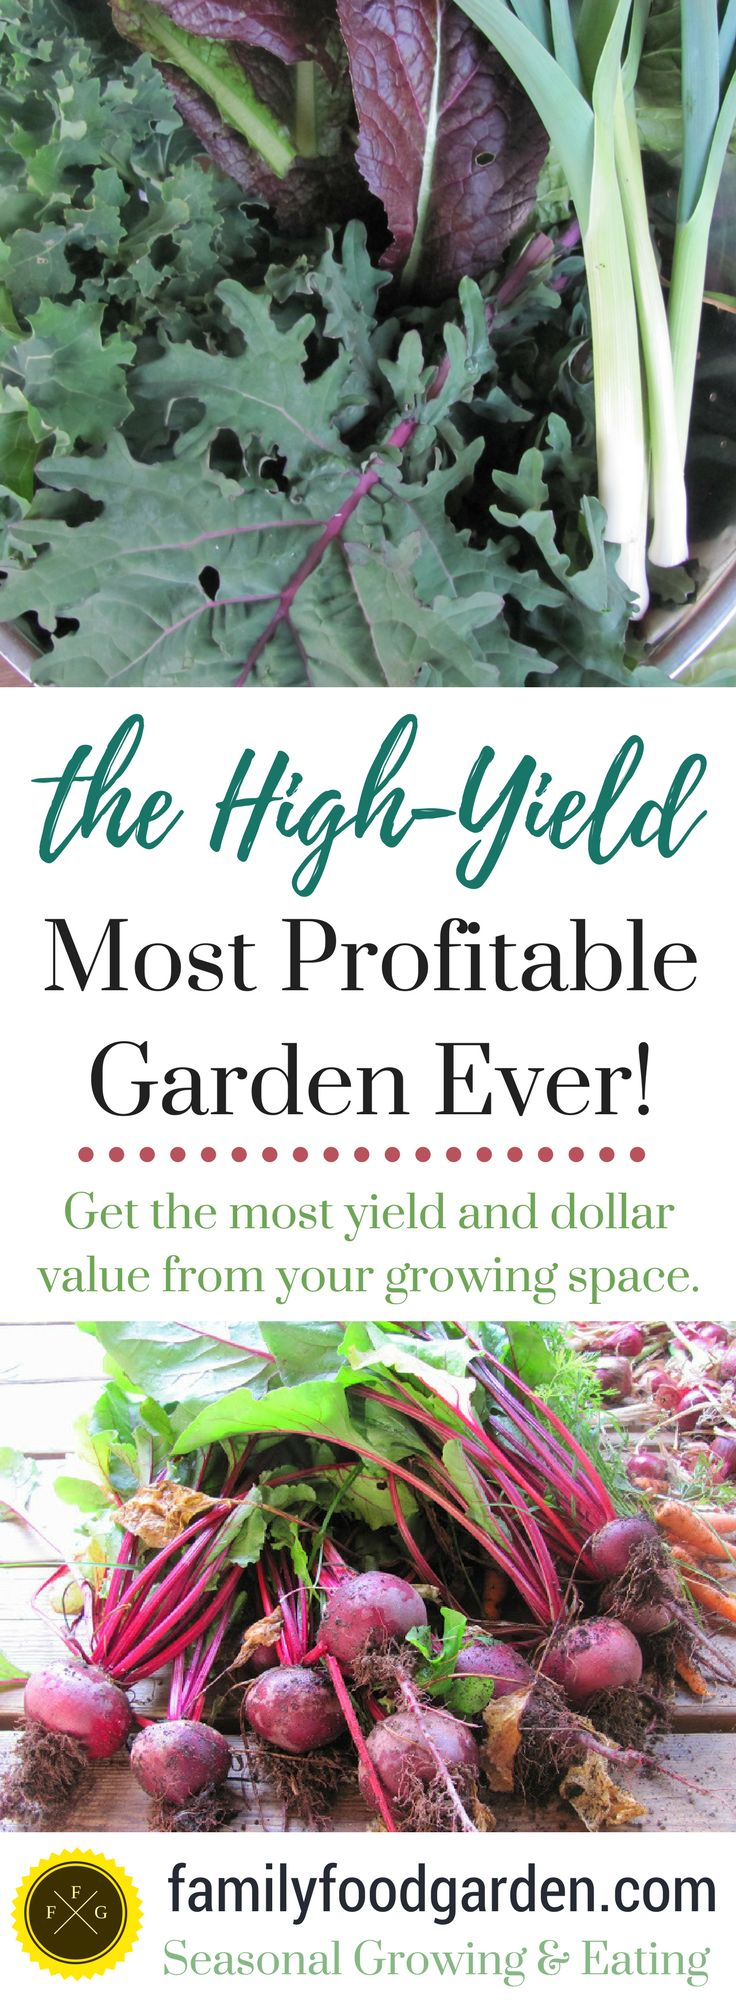 Every time I go to the grocery stores the past year I cringe at the prices of most food. Luckily we're planning a large family food garden that's high yielding and offers the best dollar value for the growing space. Here are some tips for getting the most yield and dollar value from your growing s